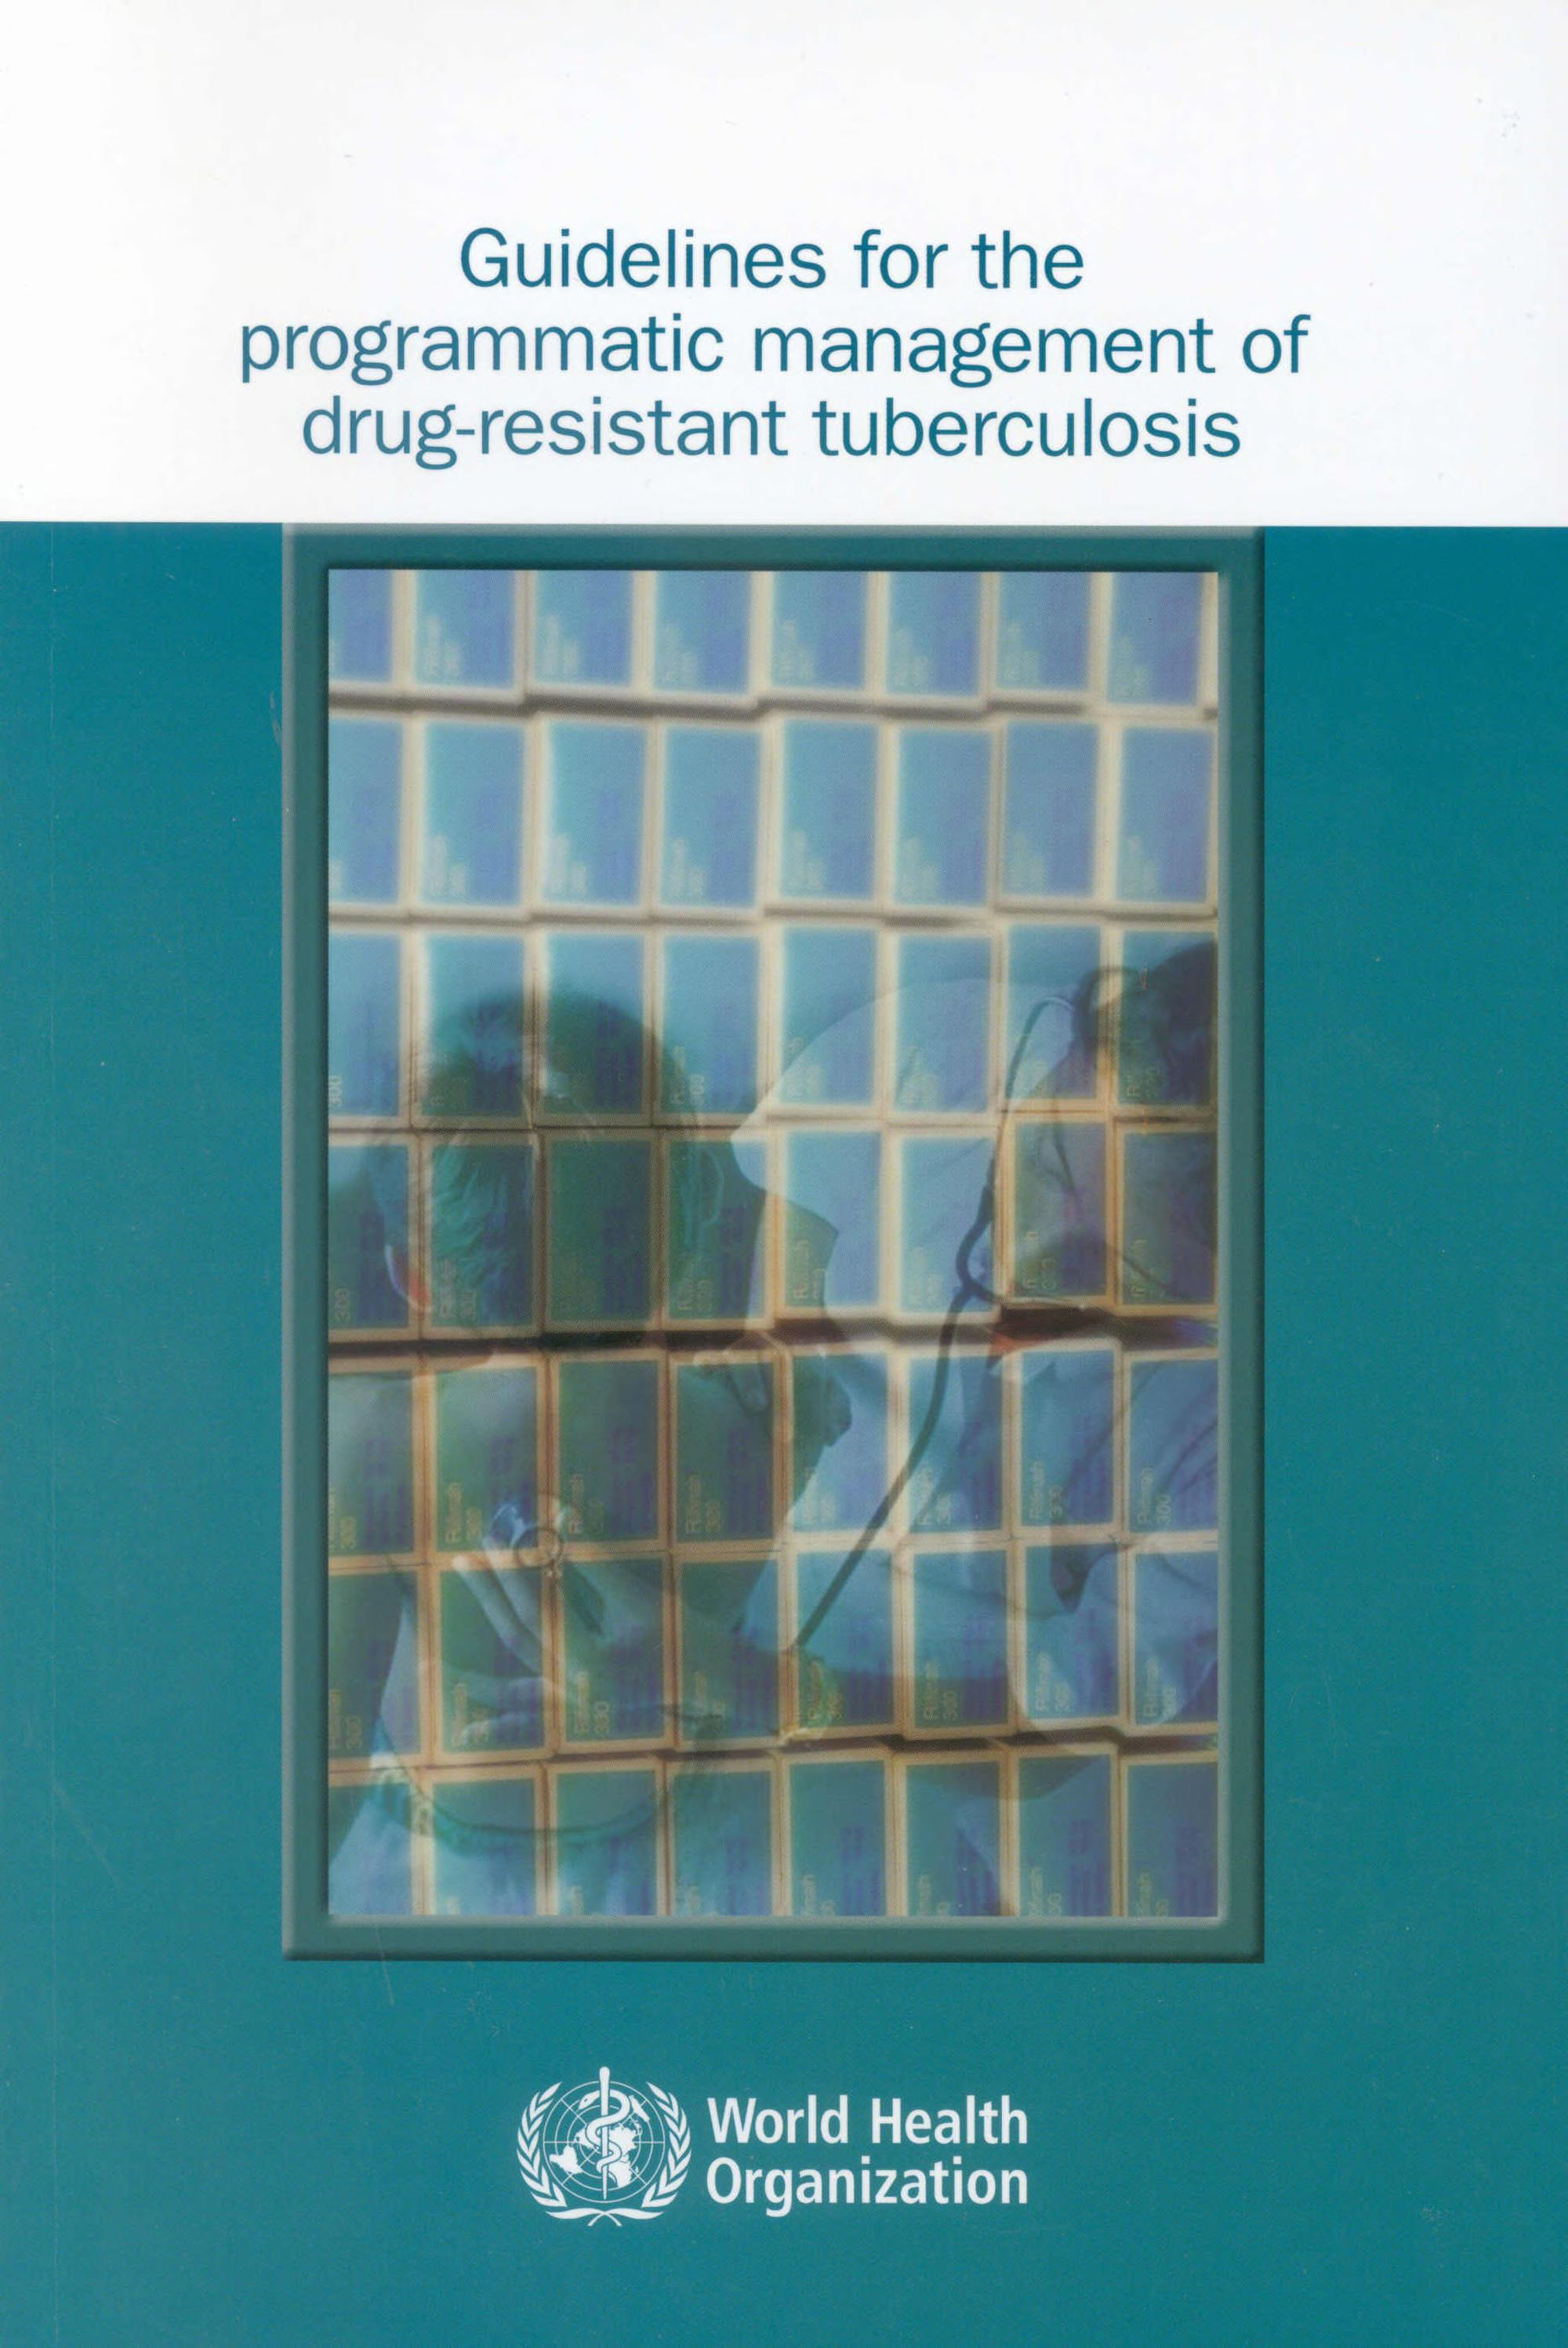 Guidelines for the Programmatic Management of Drug resistant Tuberculosis